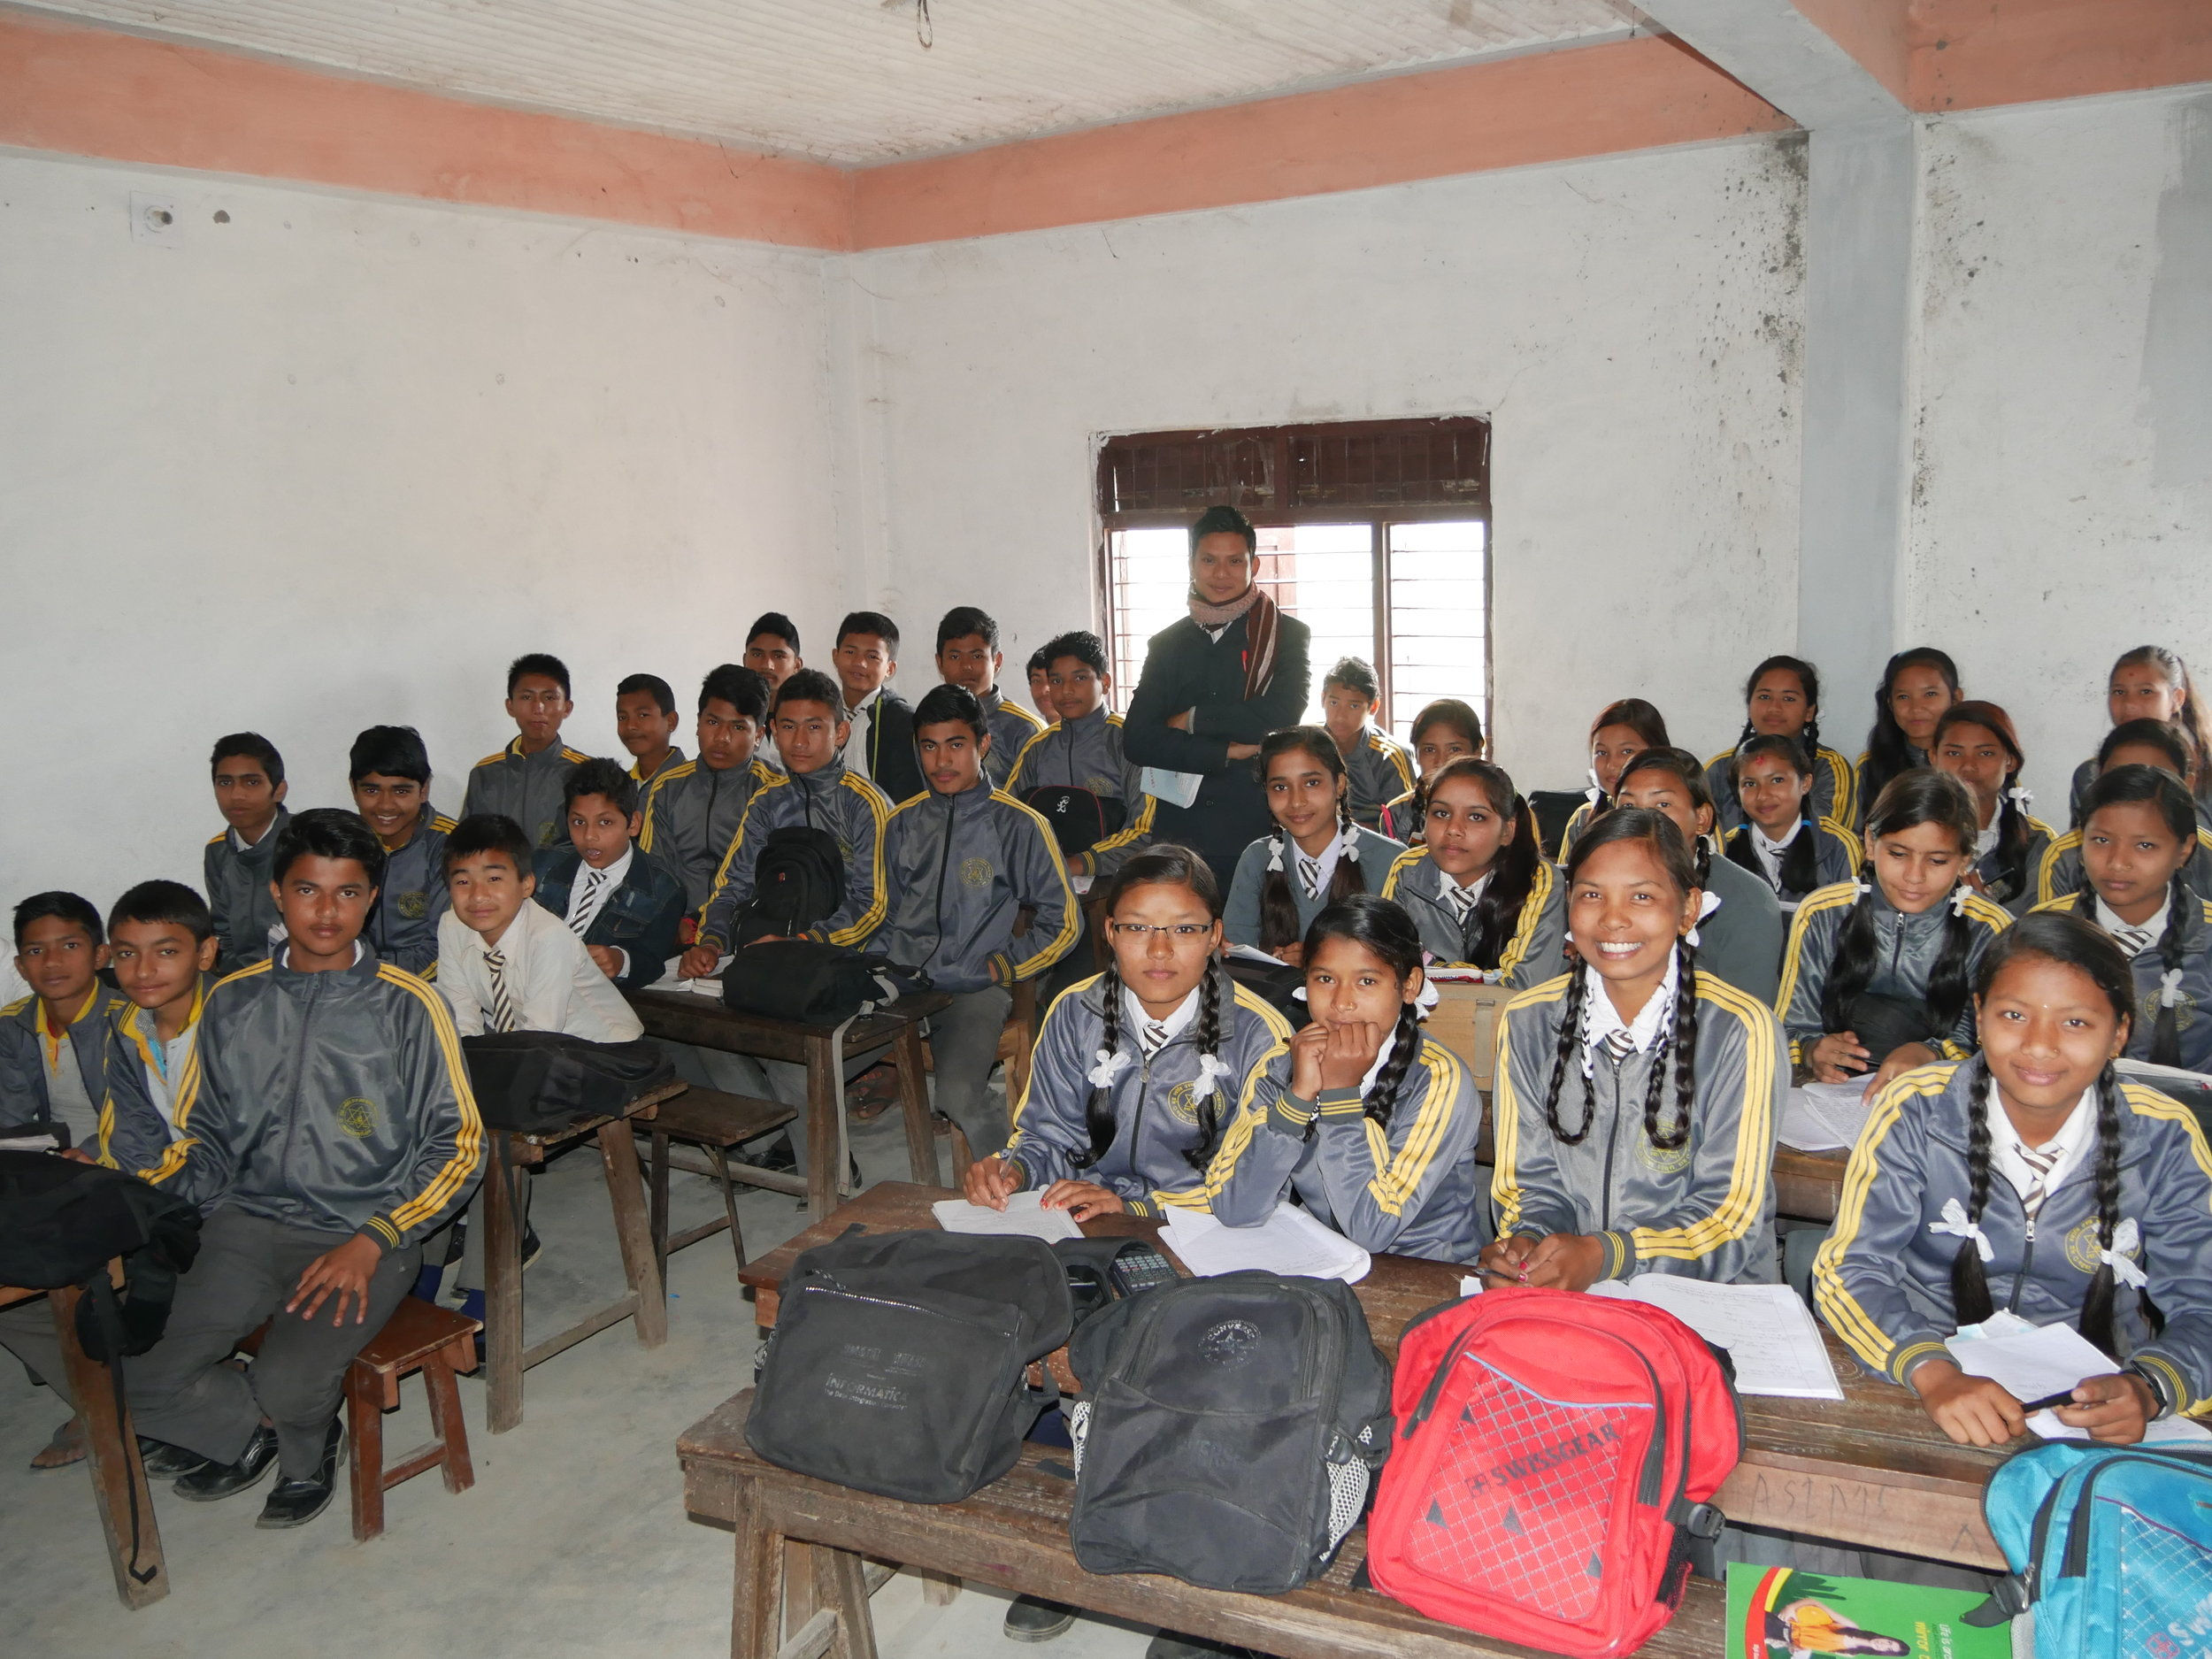 Sushmita at school (She is in the front row with her beautiful big smile!)